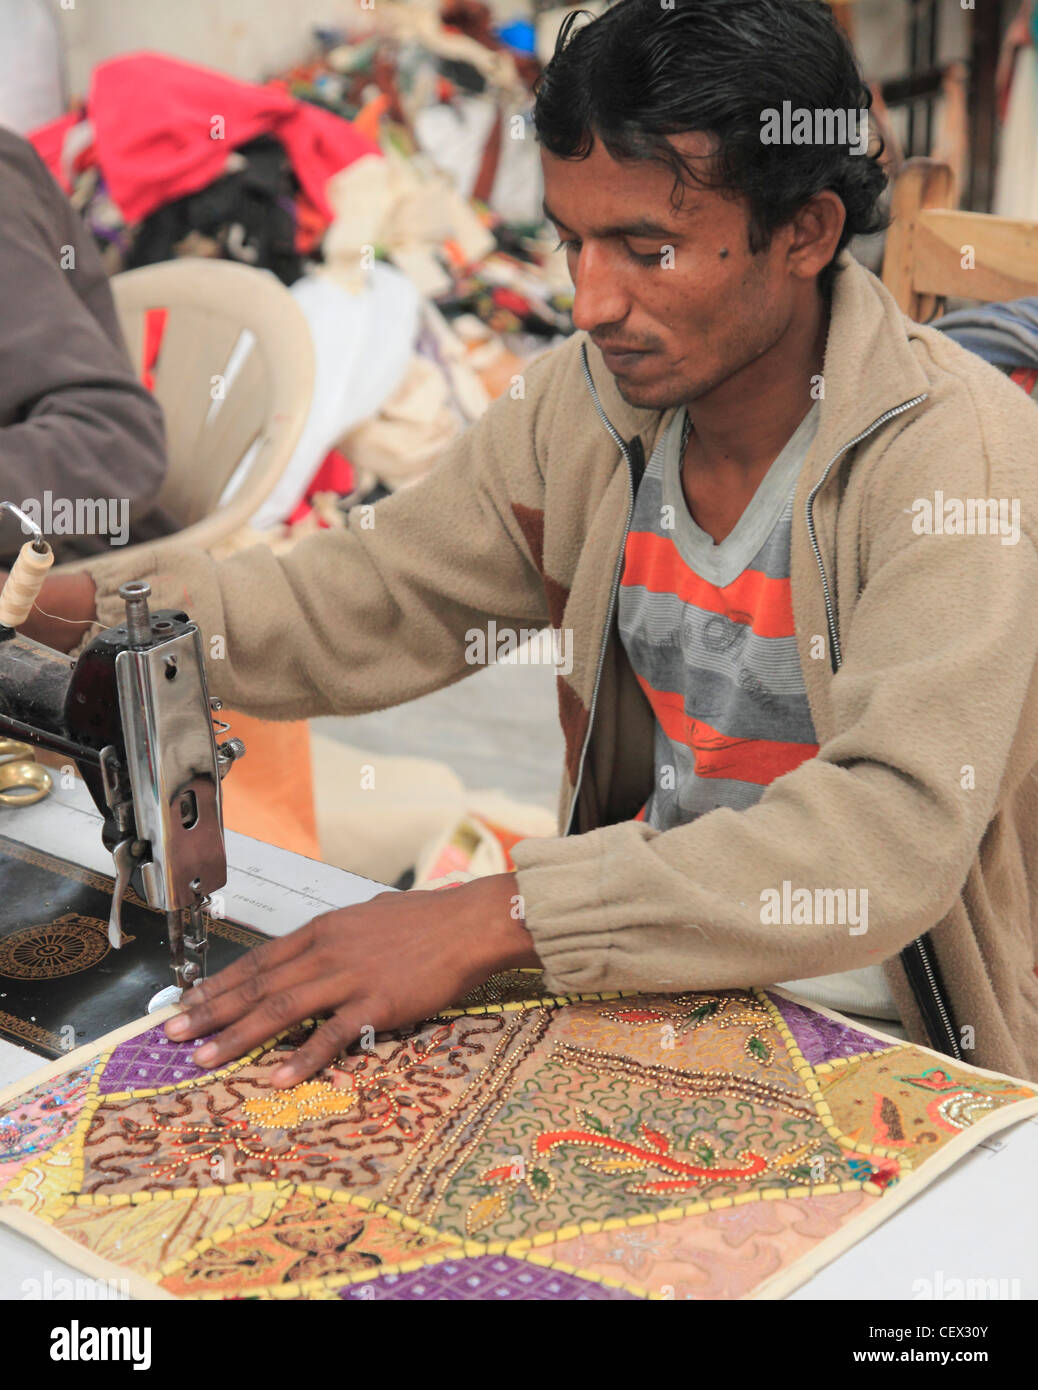 India, Rajasthan, Jodhpur, man sewing, workshop, - Stock Image